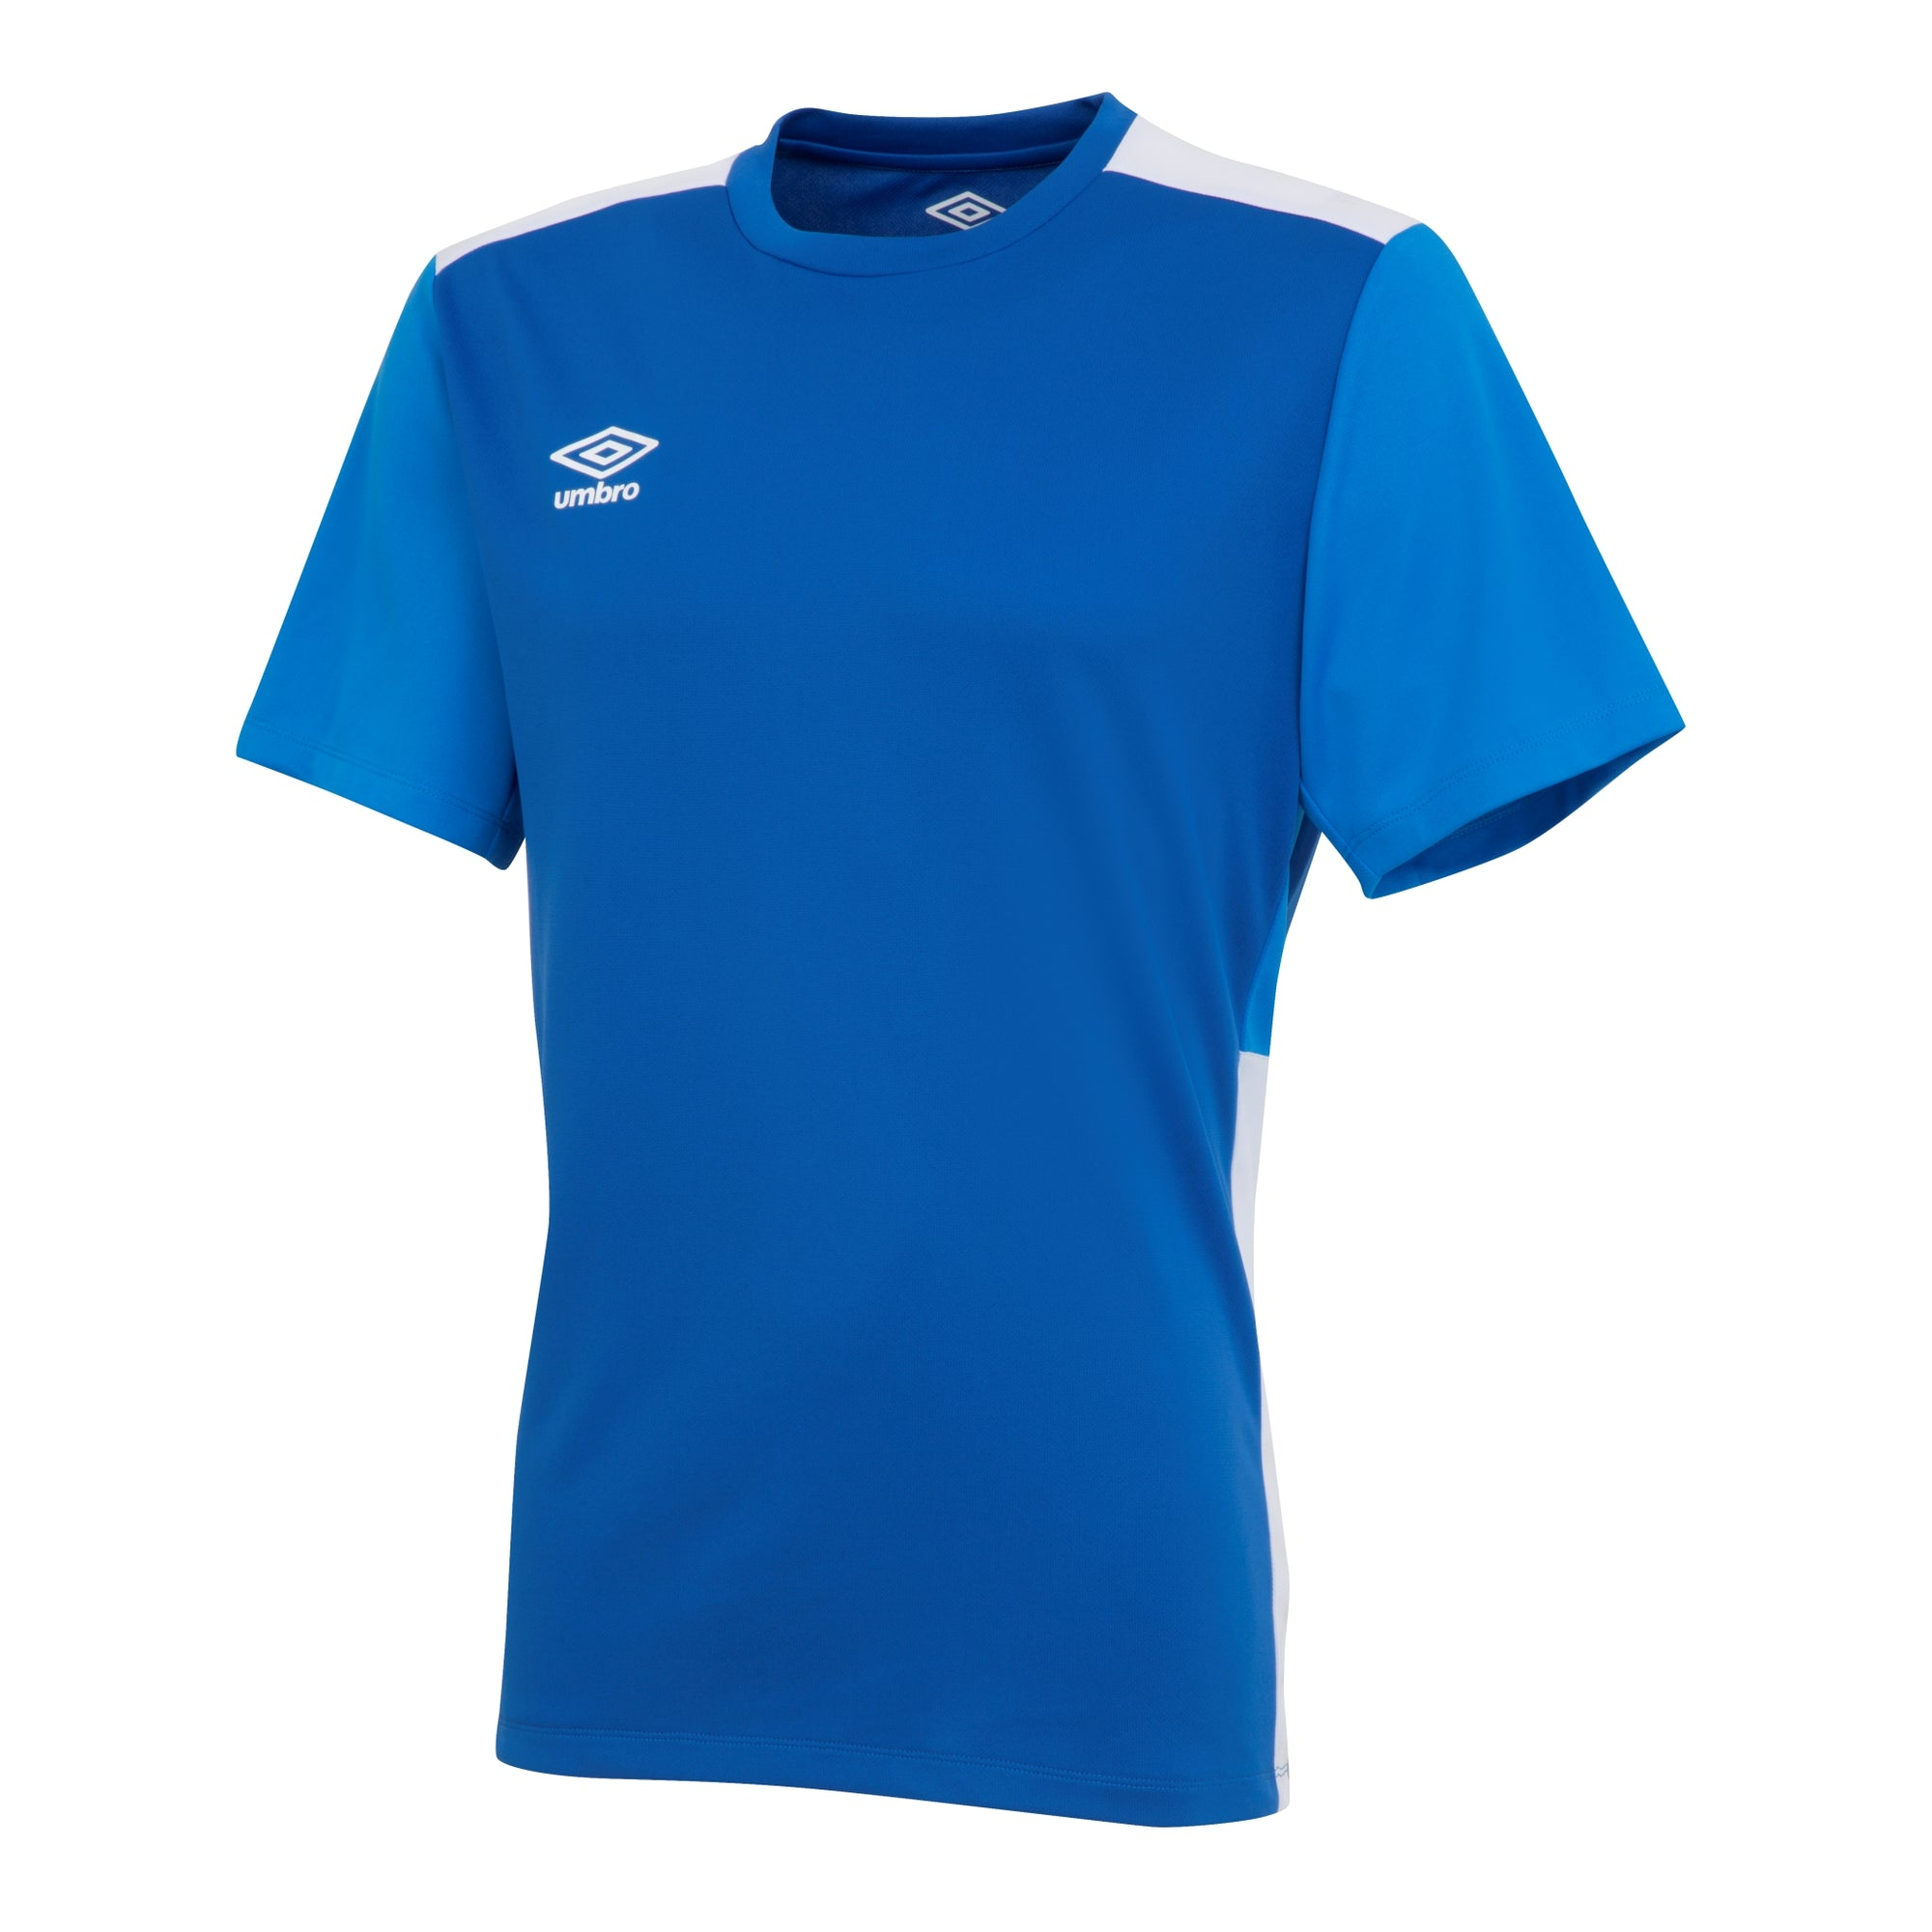 Umbro Training Jersey - Royal/French Blue/White